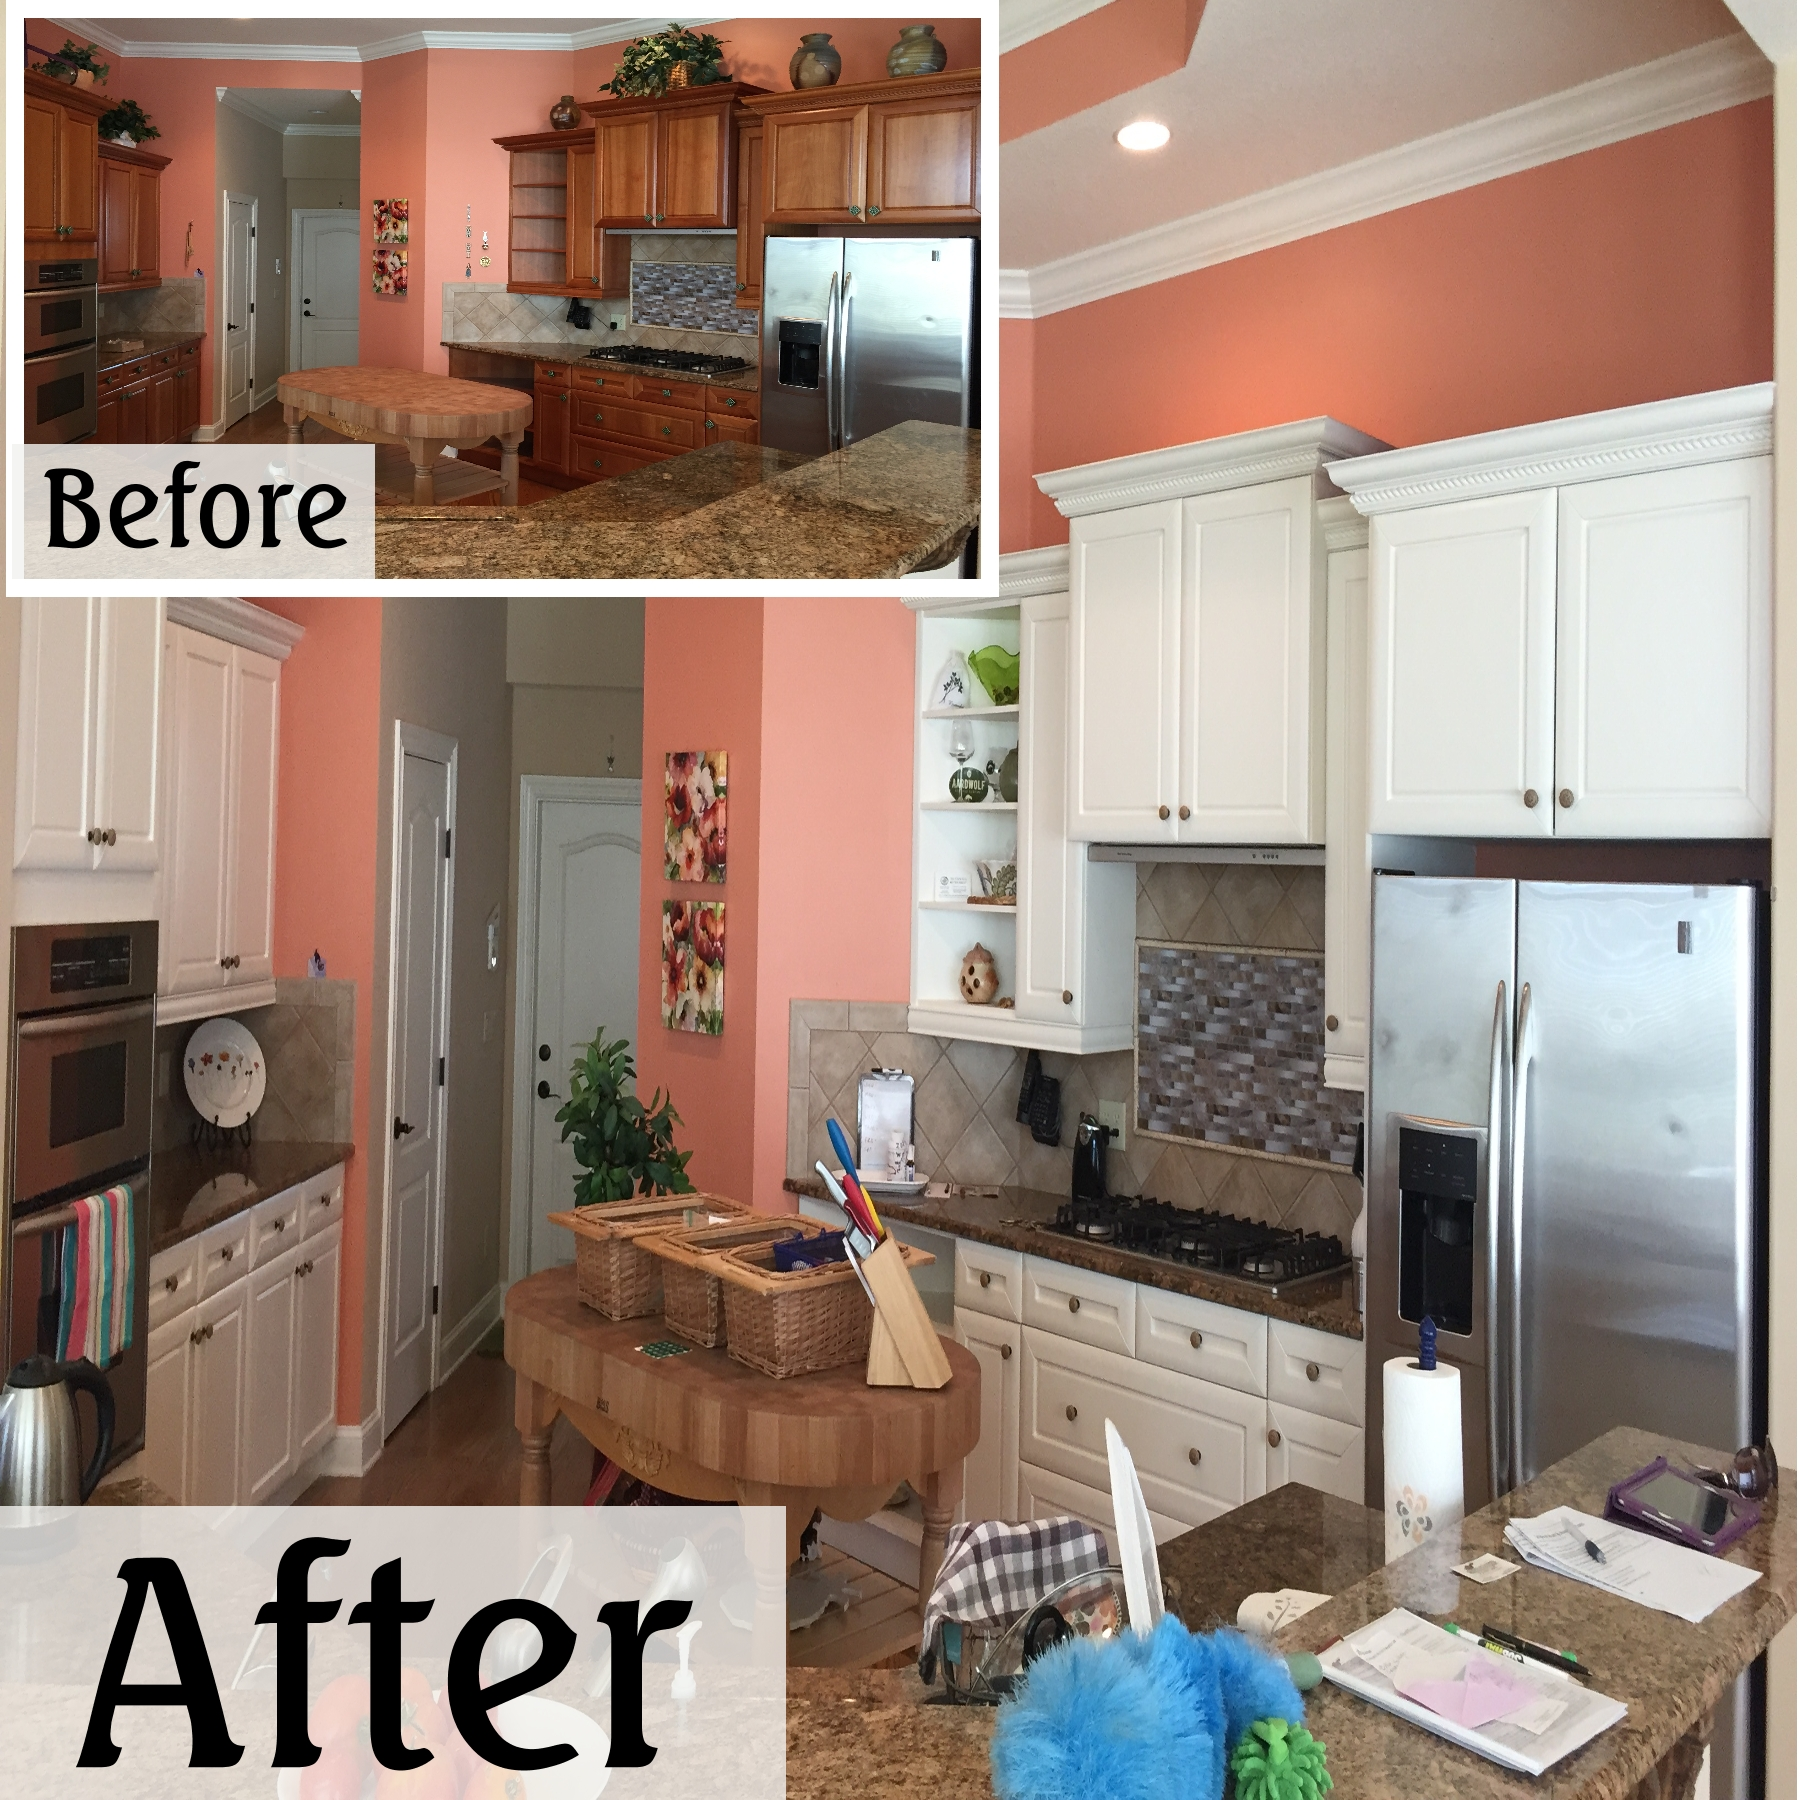 Kitchen Updates Before And After: Straight Edge Painting